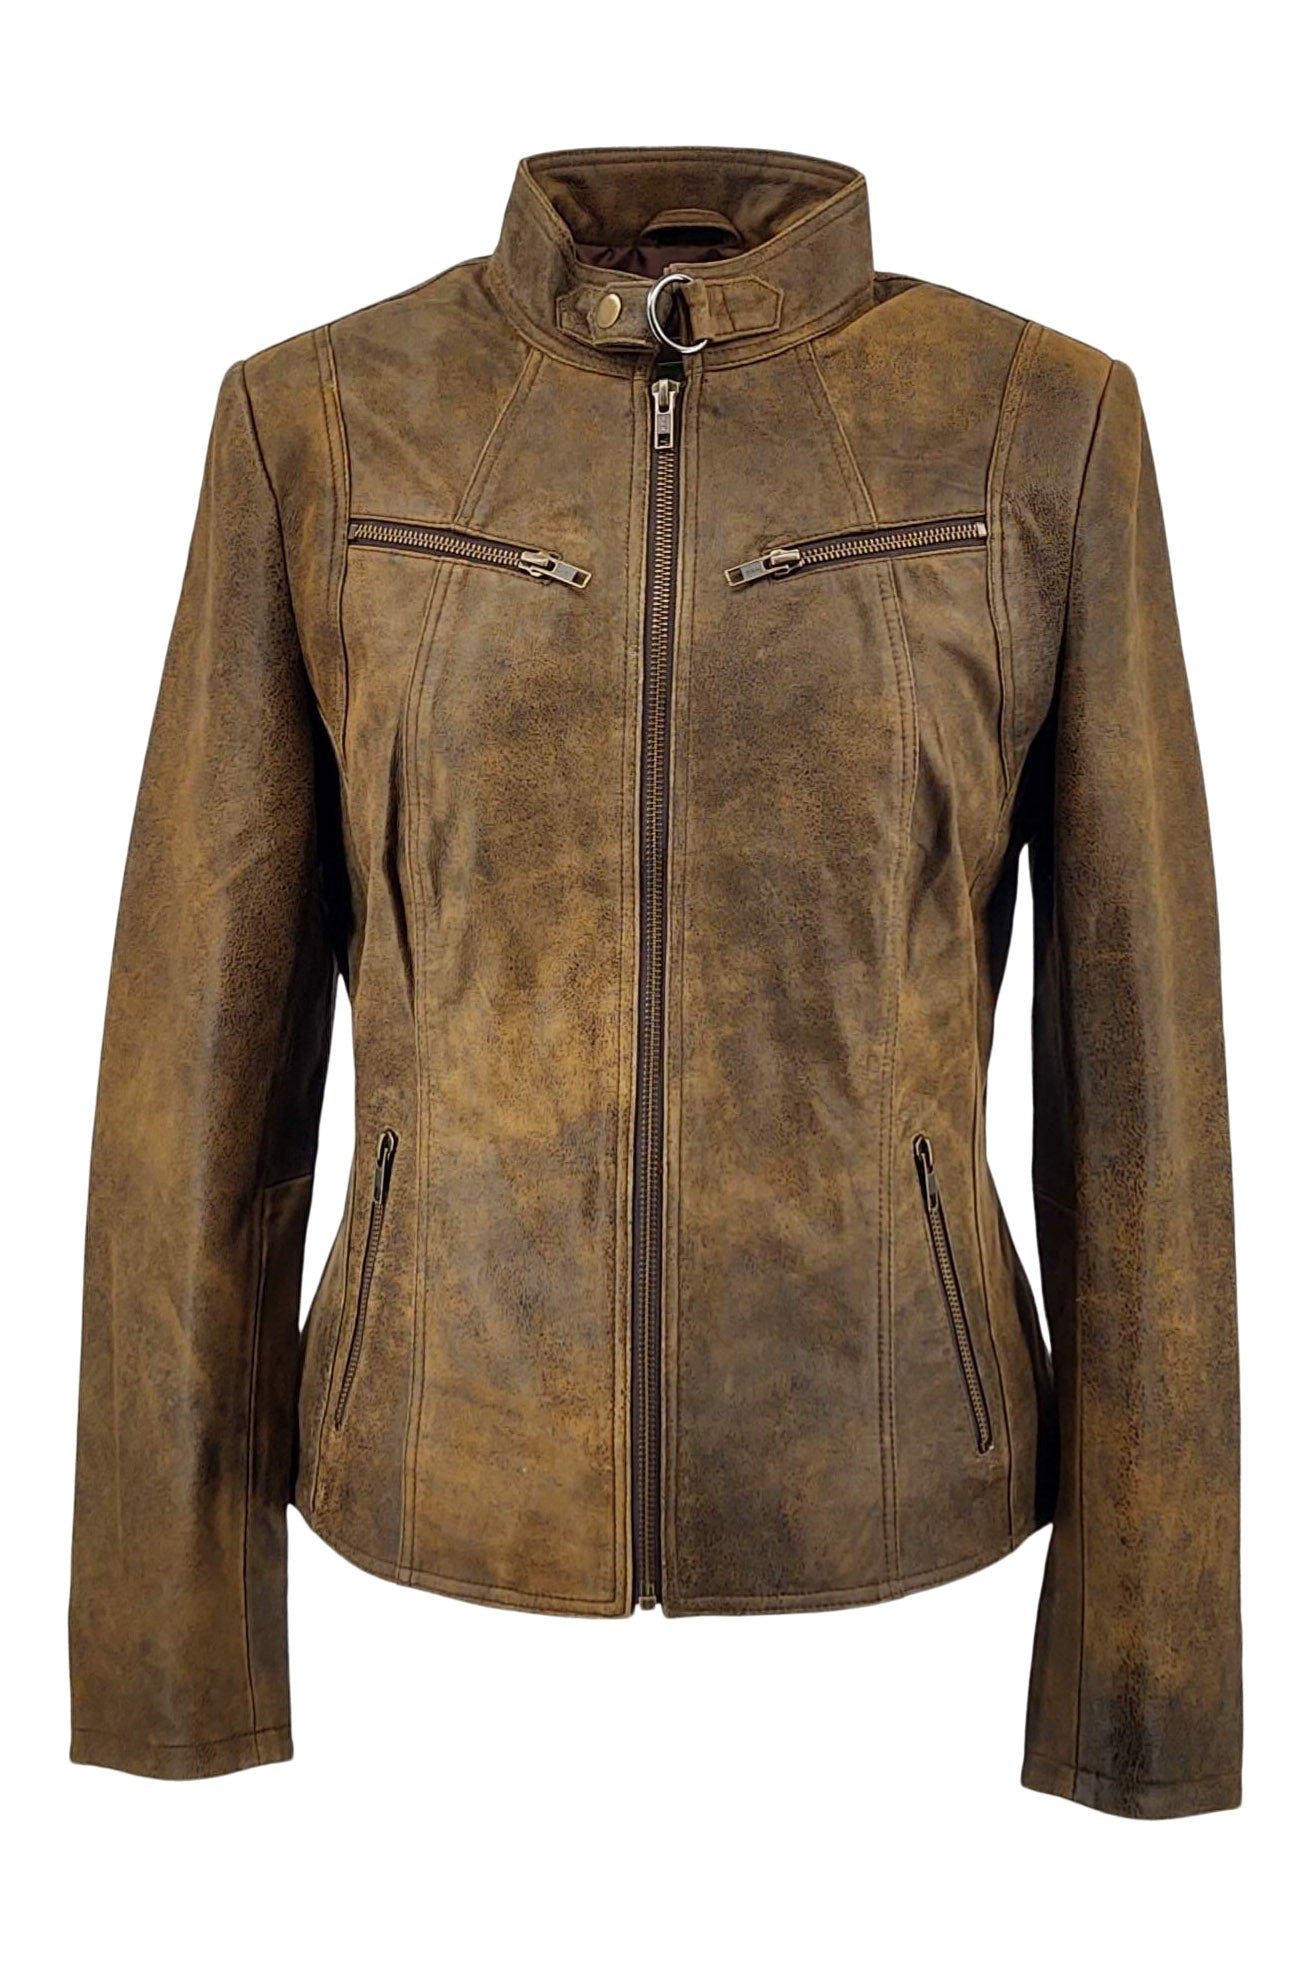 Merry - Lamb Tornado Leather - Women - Middle Brown | STAMPE PELS